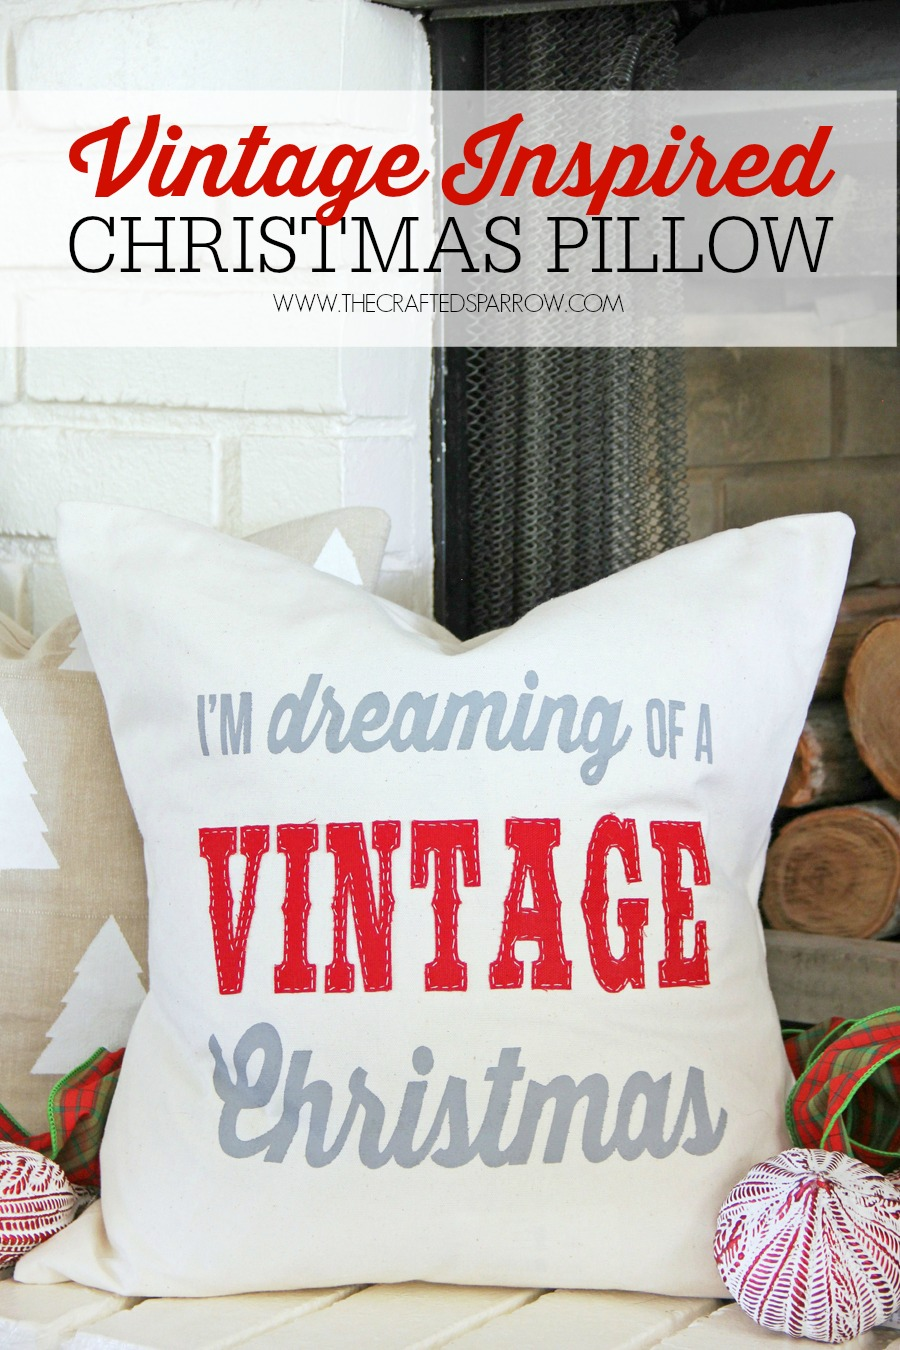 Dreaming-of-a-Vintage-Christmas-Pillow